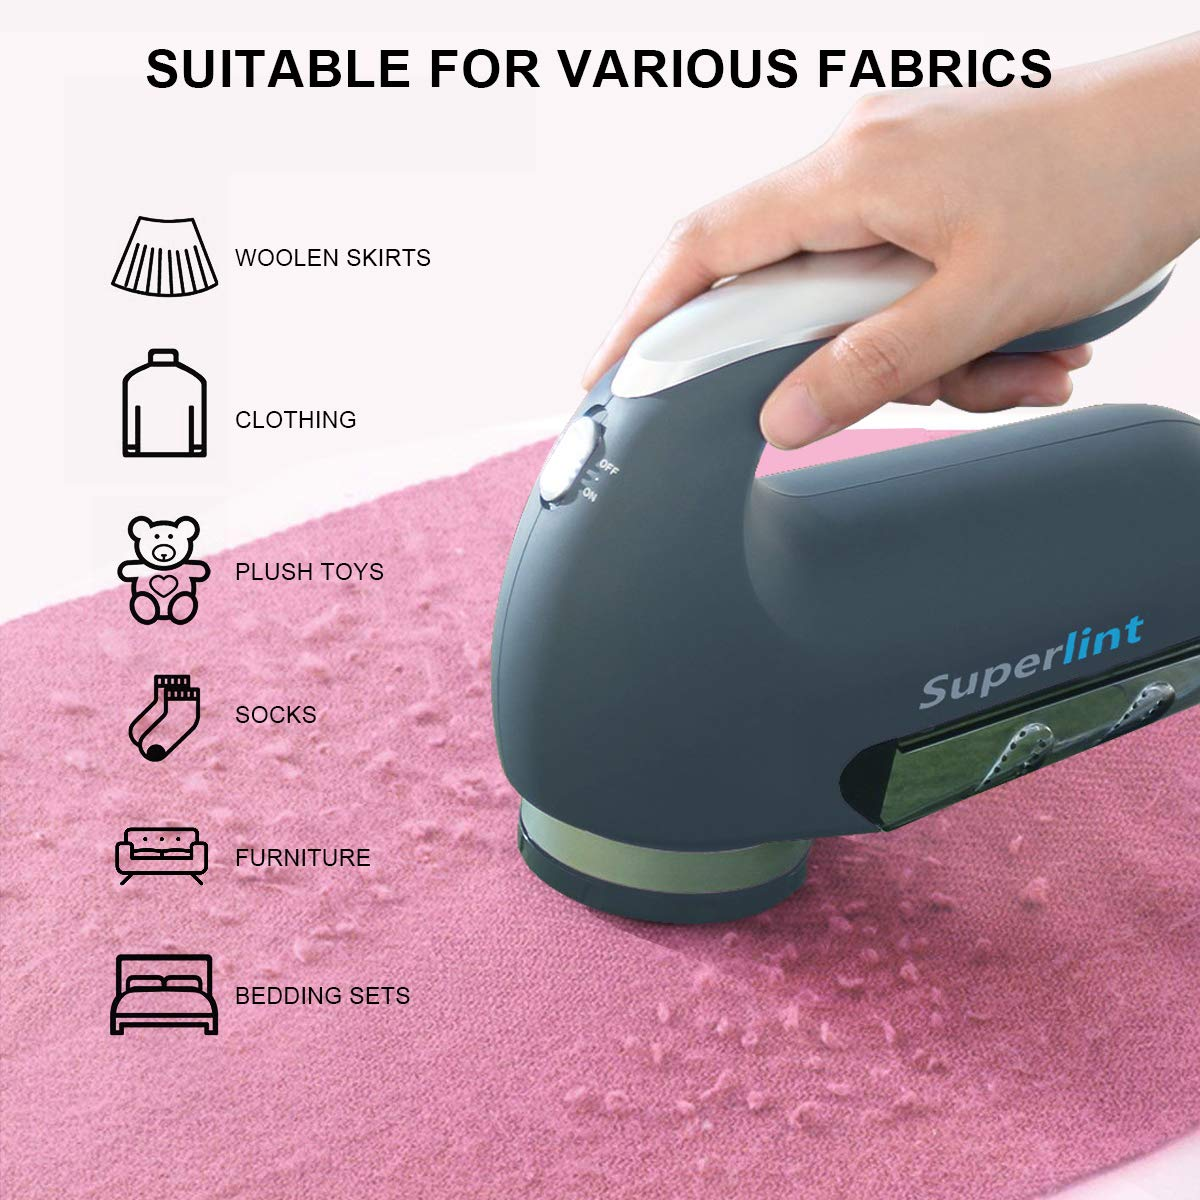 SUPER LINT Professional Electric Sweater Shaver Best Fuzz Pill Bobble Remover for Fabrics, Bedding, Clothes and Furniture, Use with Batteries or Power Adapter, Marine Blue & Silver by SUPER LINT (Image #3)